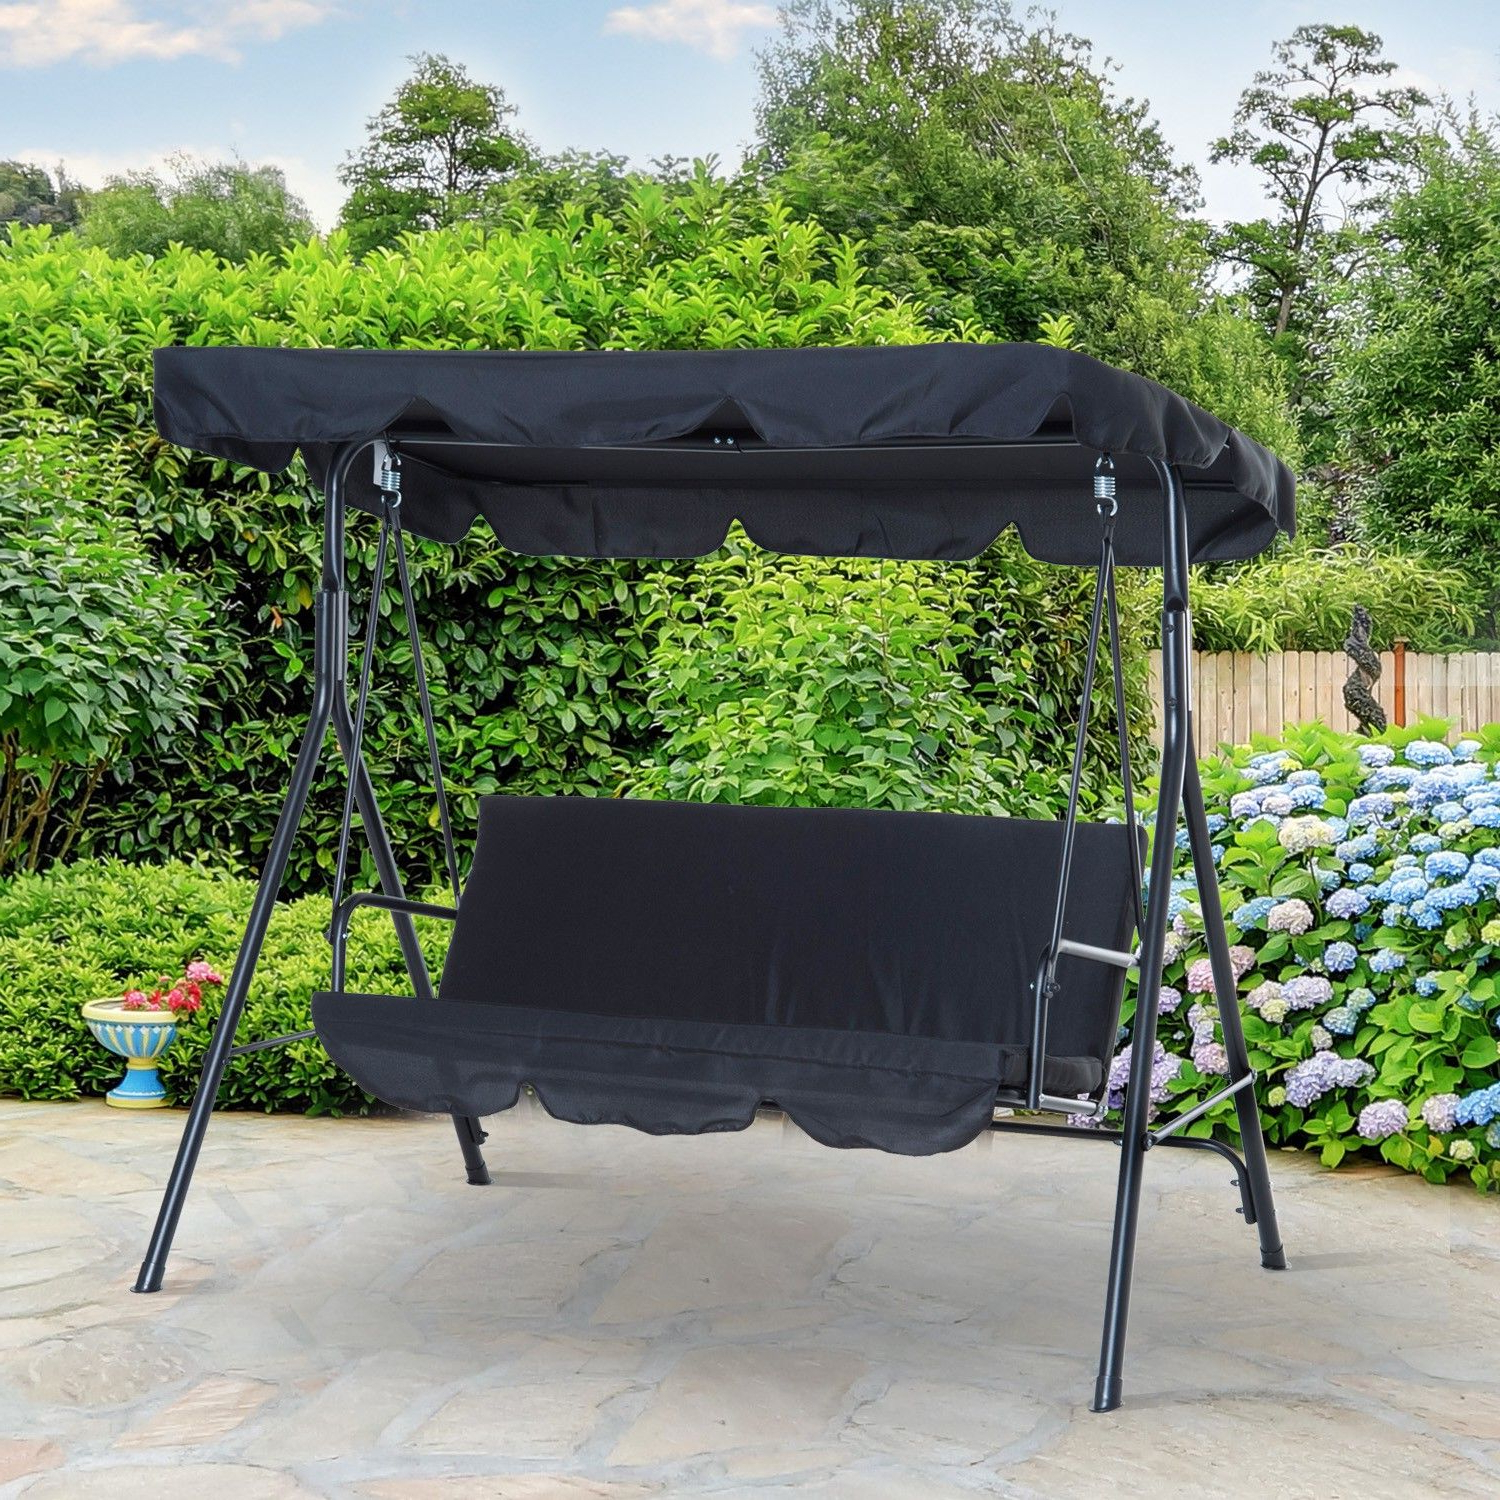 2019 3 Seats Patio Canopy Swing Gliders Hammock Cushioned Steel Frame Pertaining To Outsunny Metal 3 Seater Outdoor Patio Swing With Canopy (View 1 of 30)